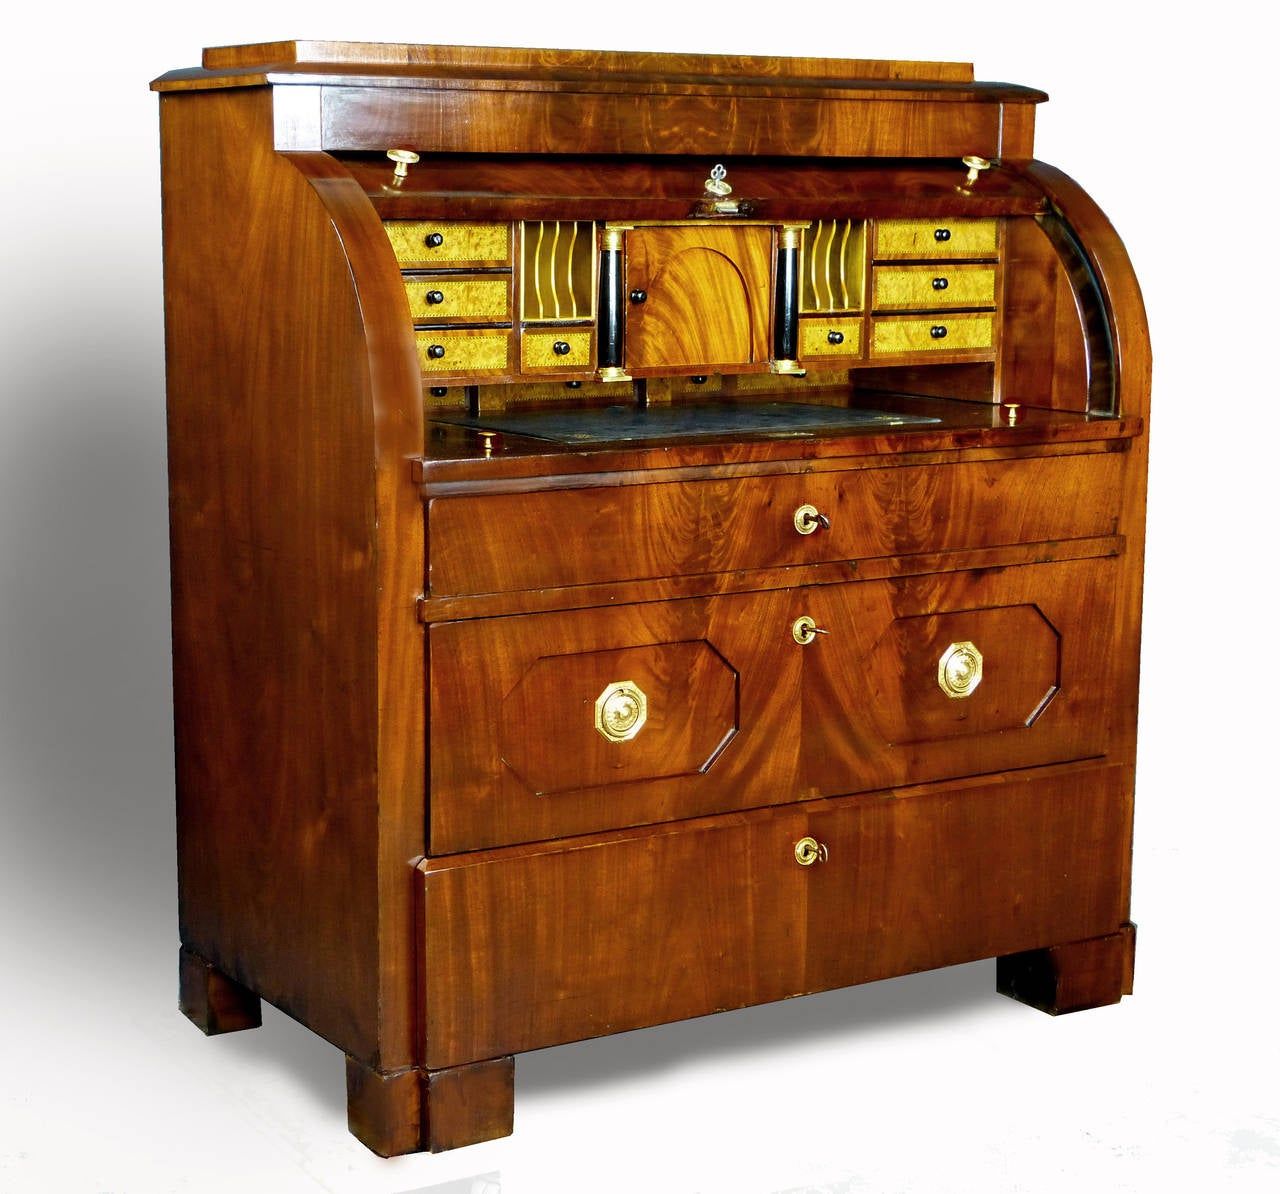 biedermeier cylinder top bureau secretaire at 1stdibs. Black Bedroom Furniture Sets. Home Design Ideas